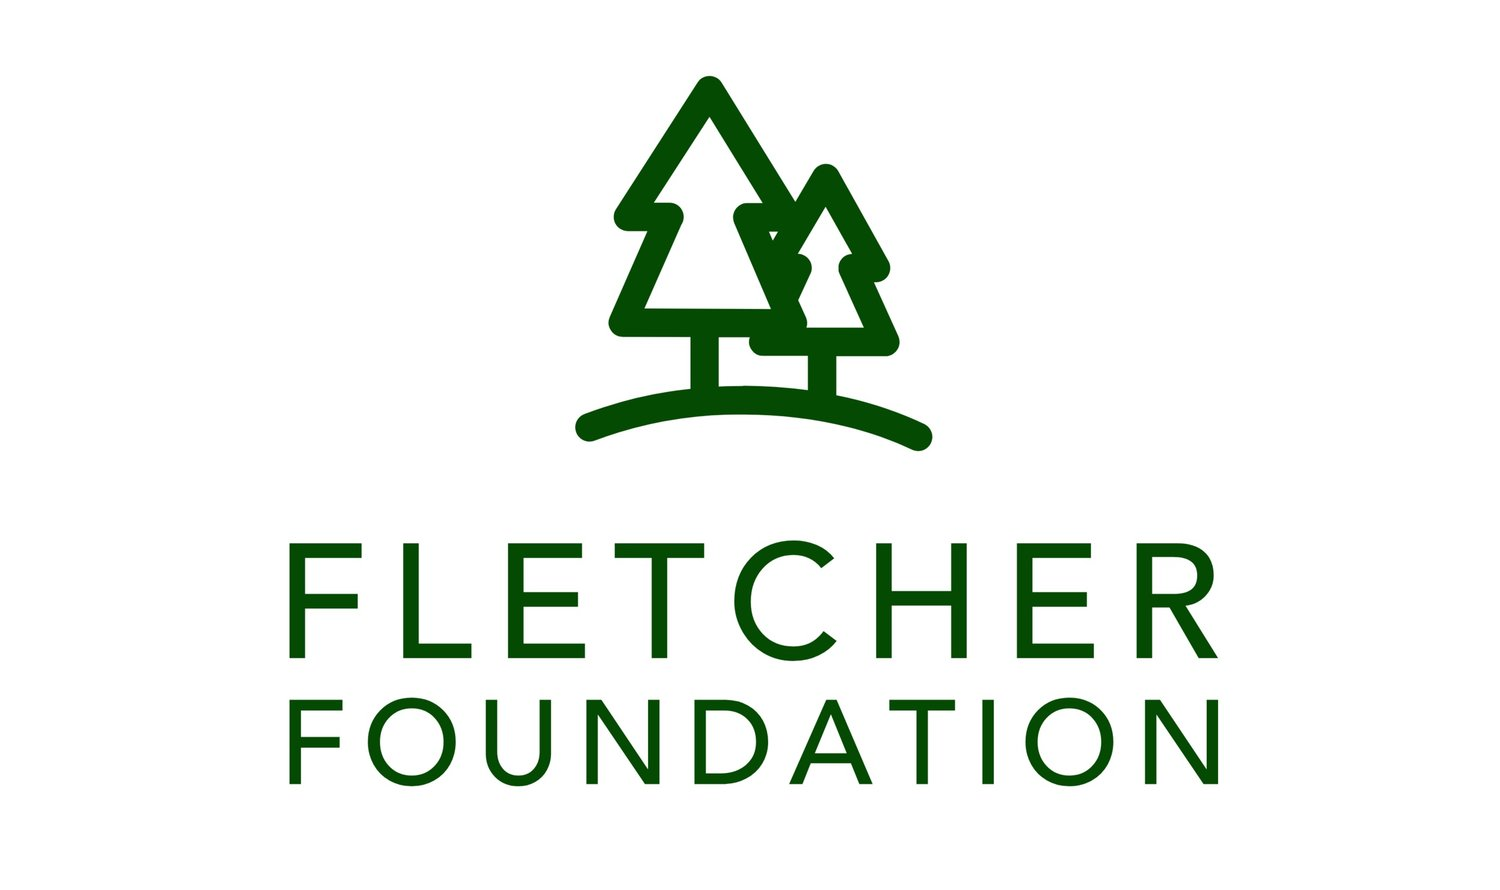 The Fletcher Foundation